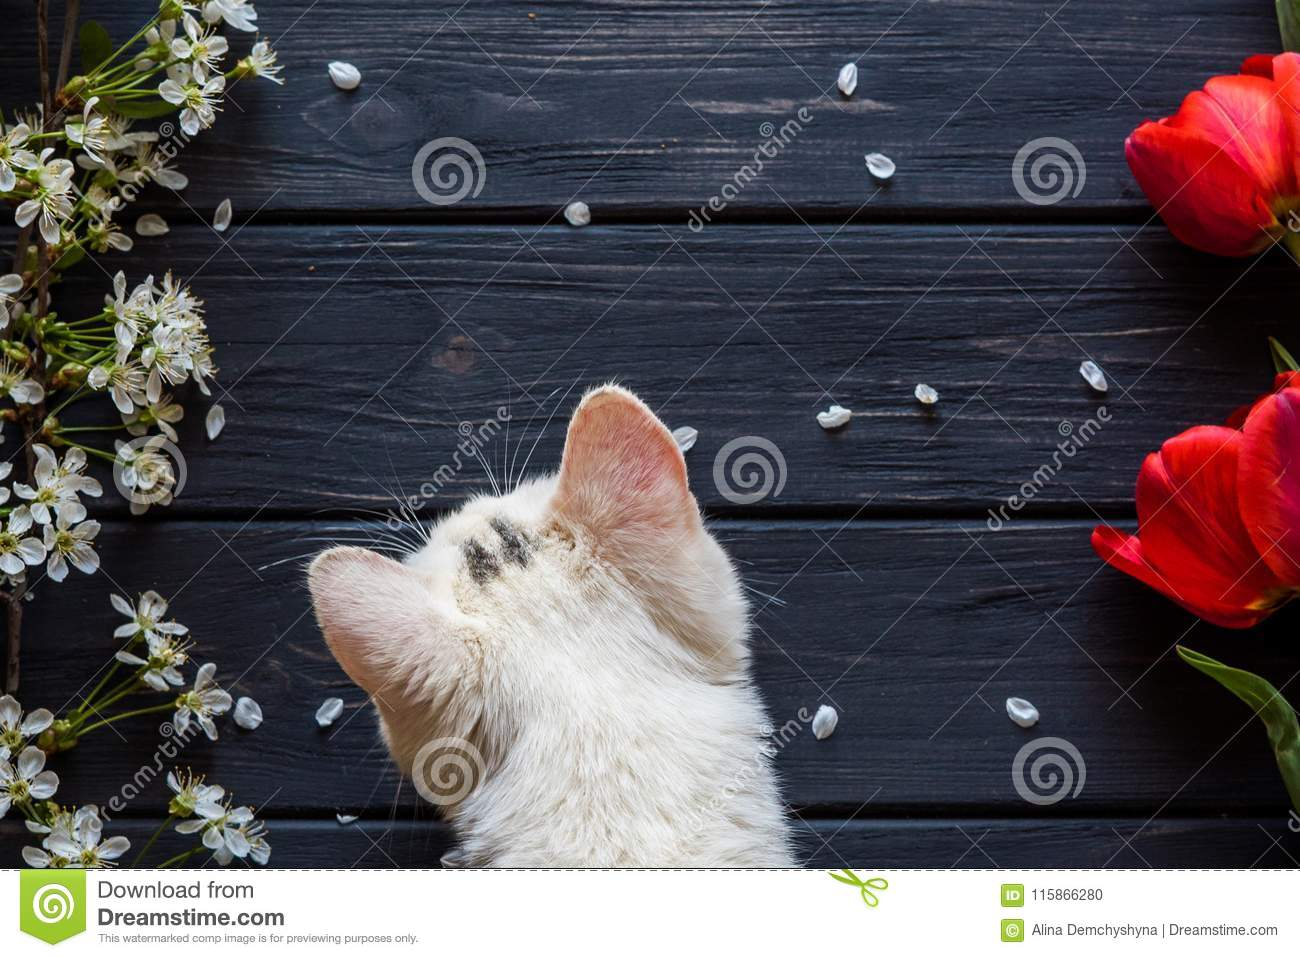 Flowers and kitten on a black wooden background